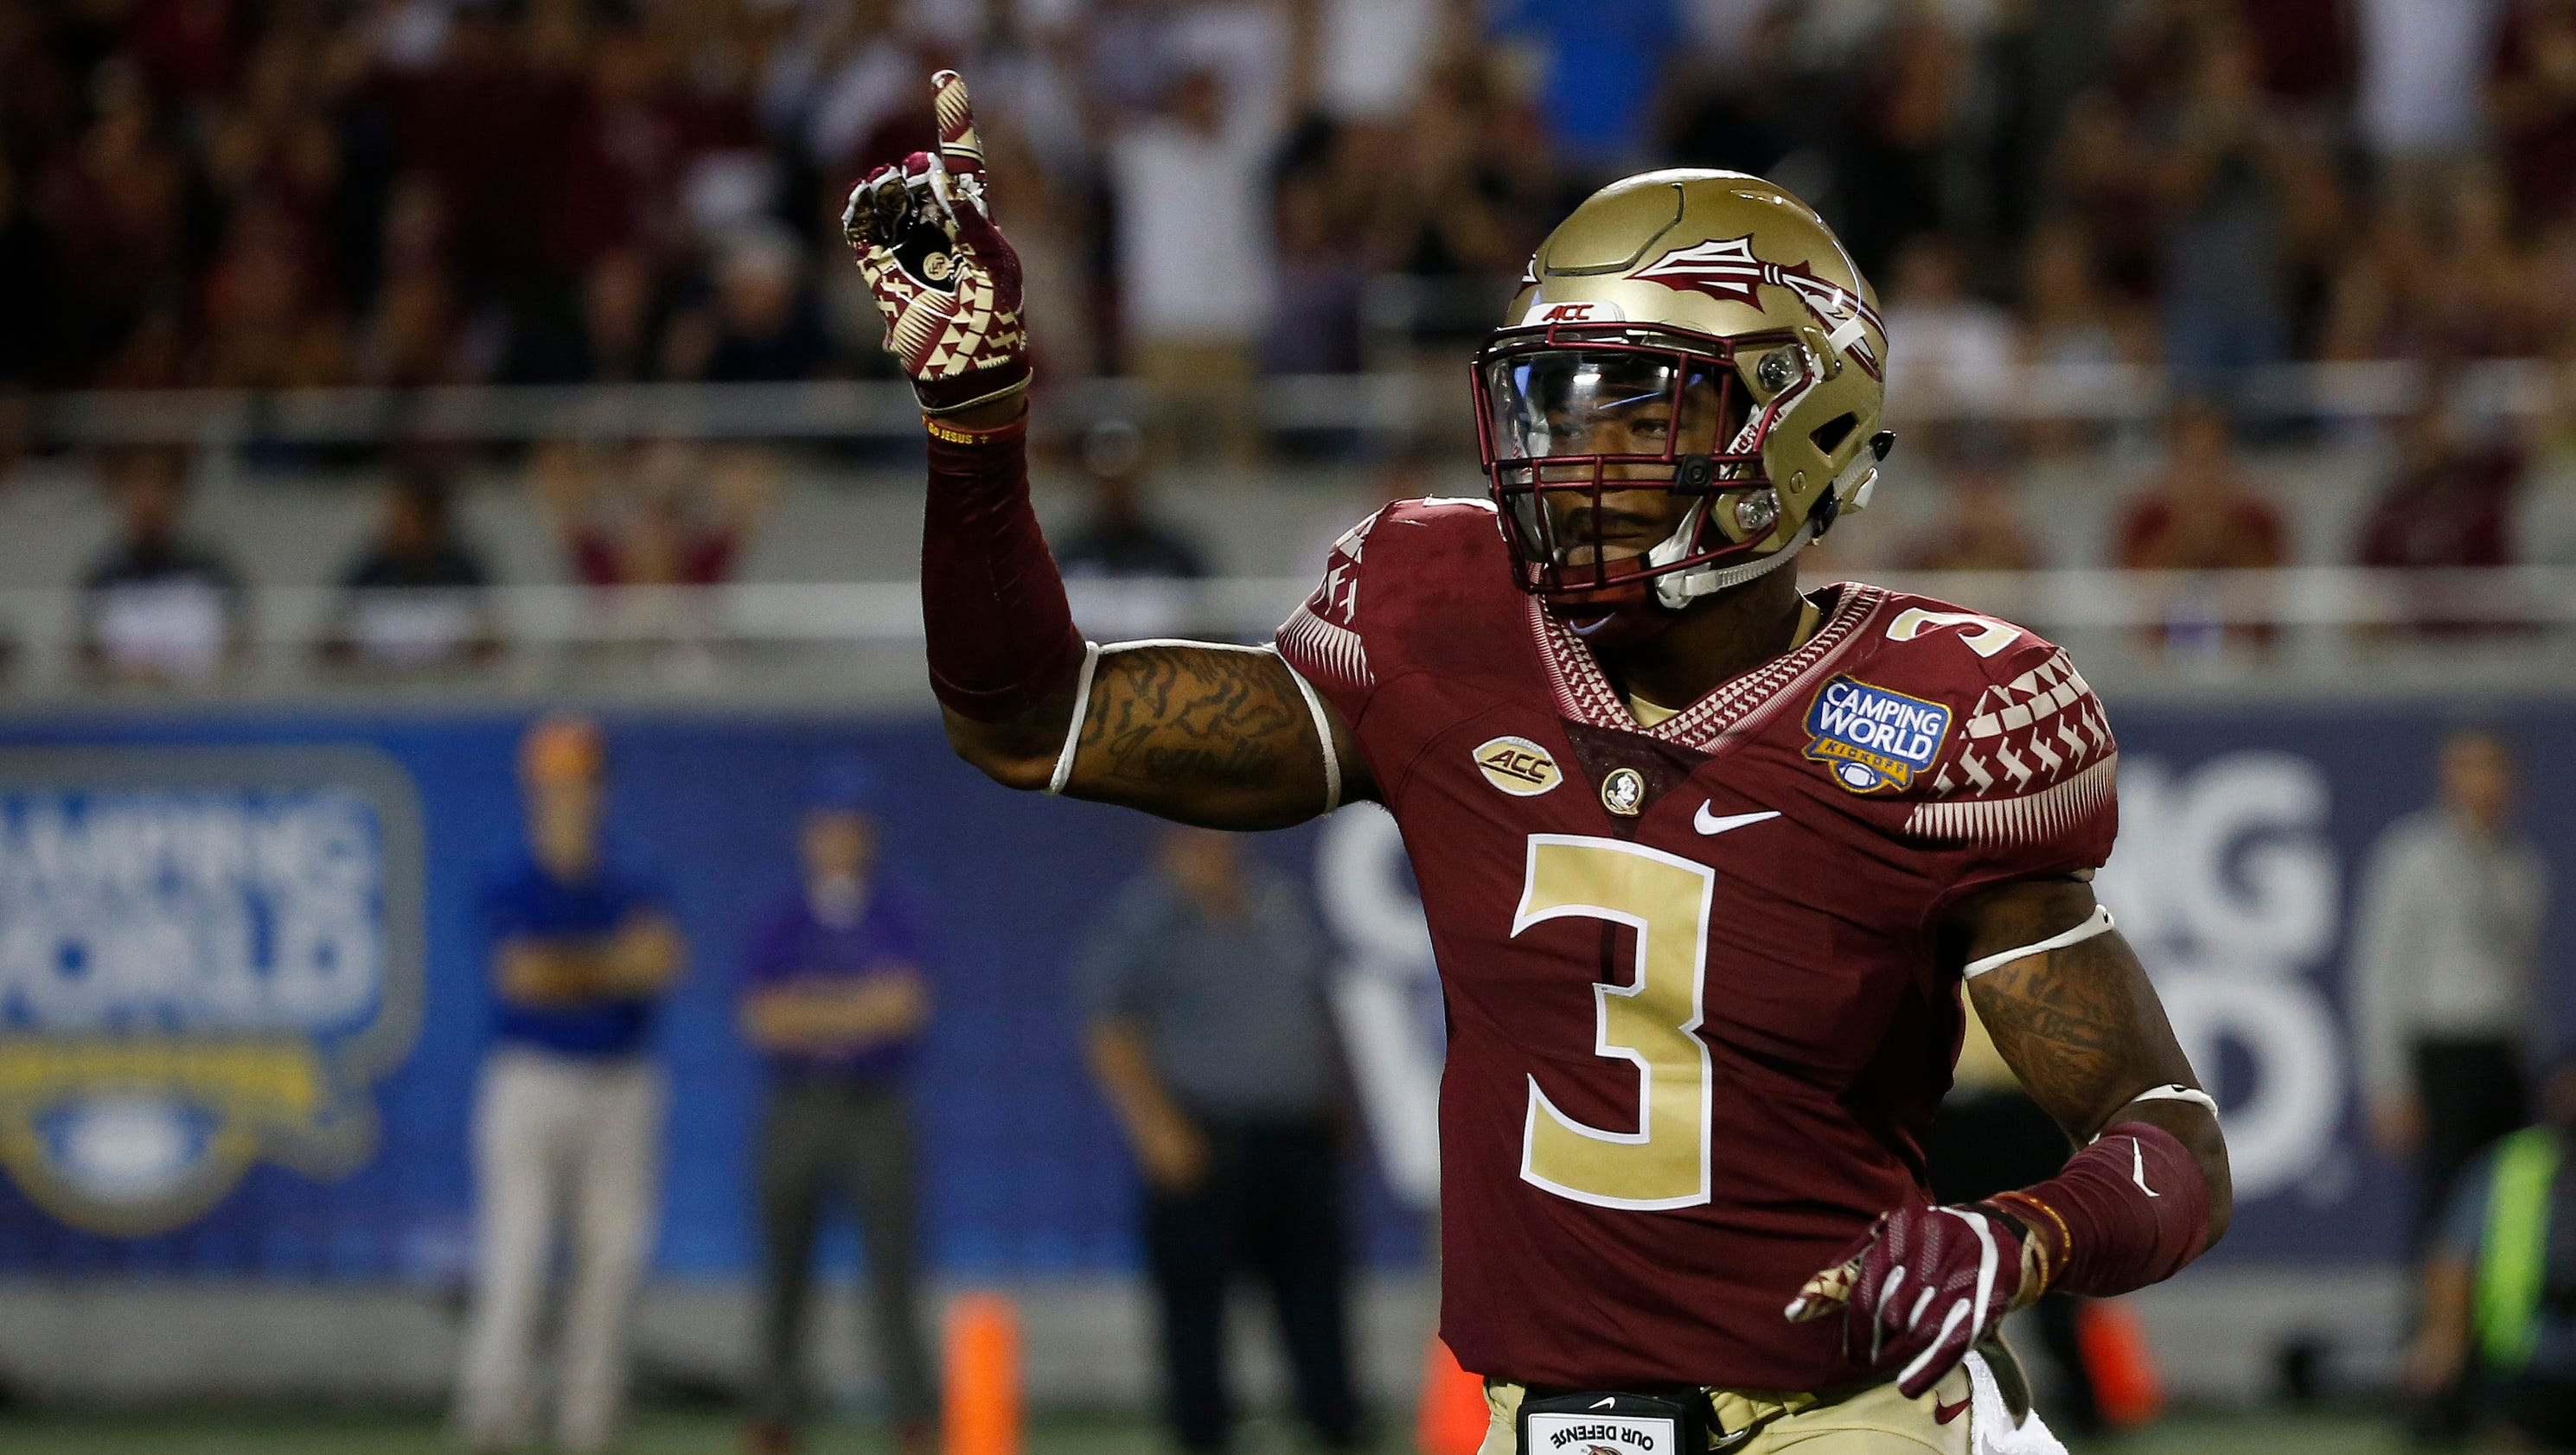 Florida State standout safety Derwin James out for Orange Bowl